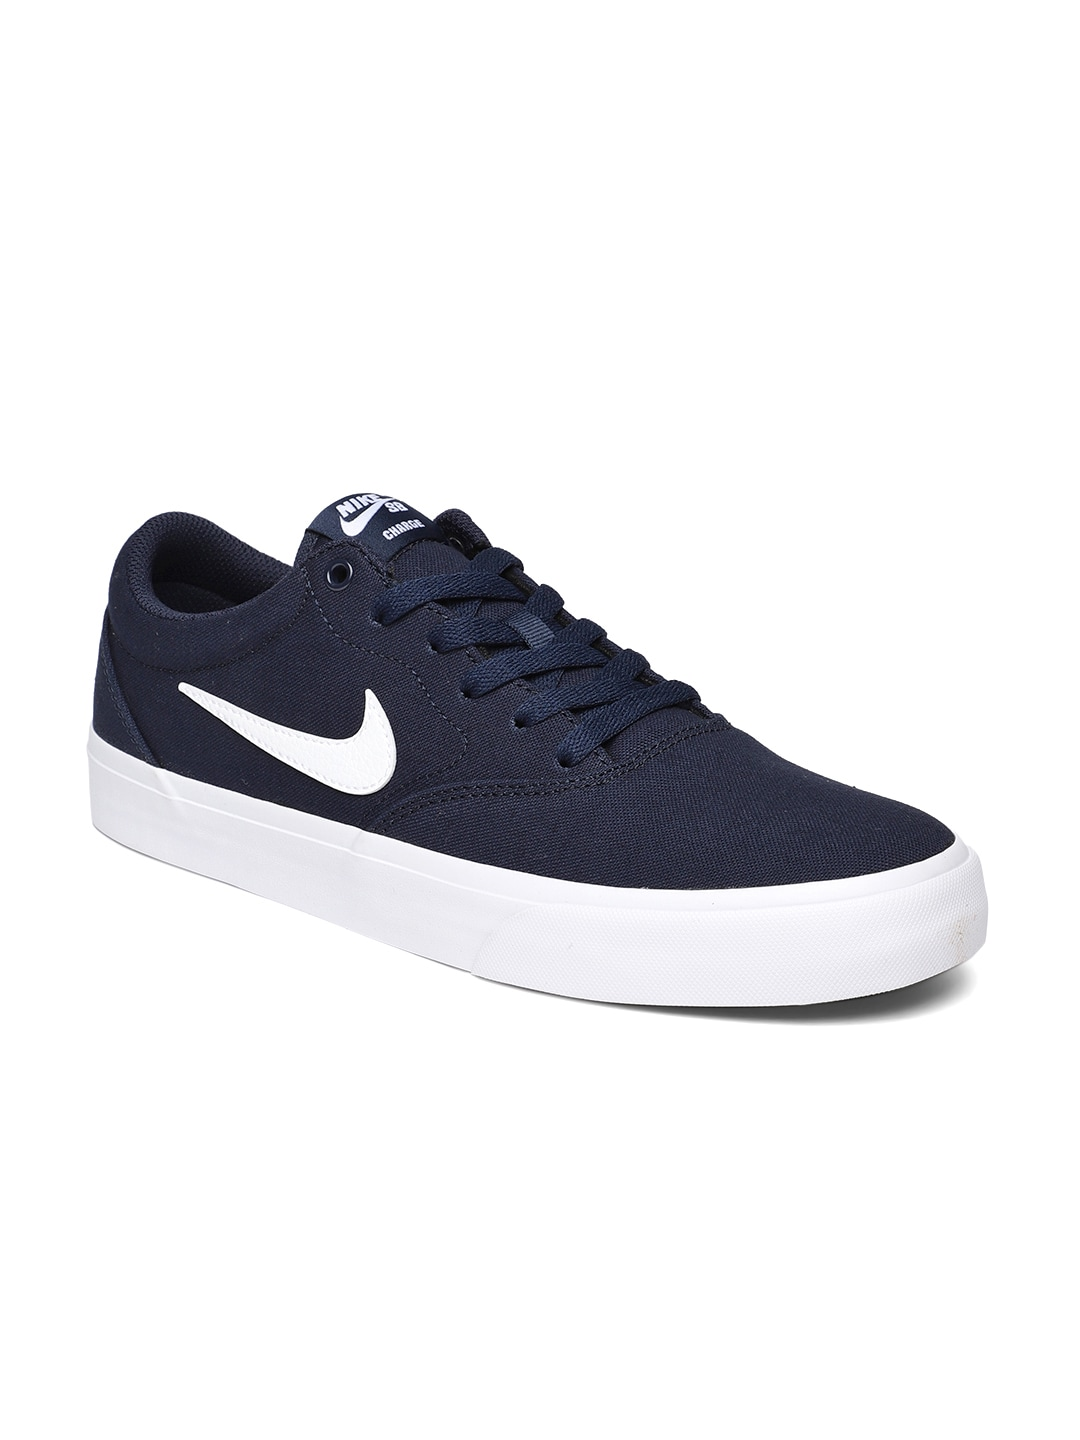 5ab08a4735 Nike Football Shoes Wallets - Buy Nike Football Shoes Wallets online in  India